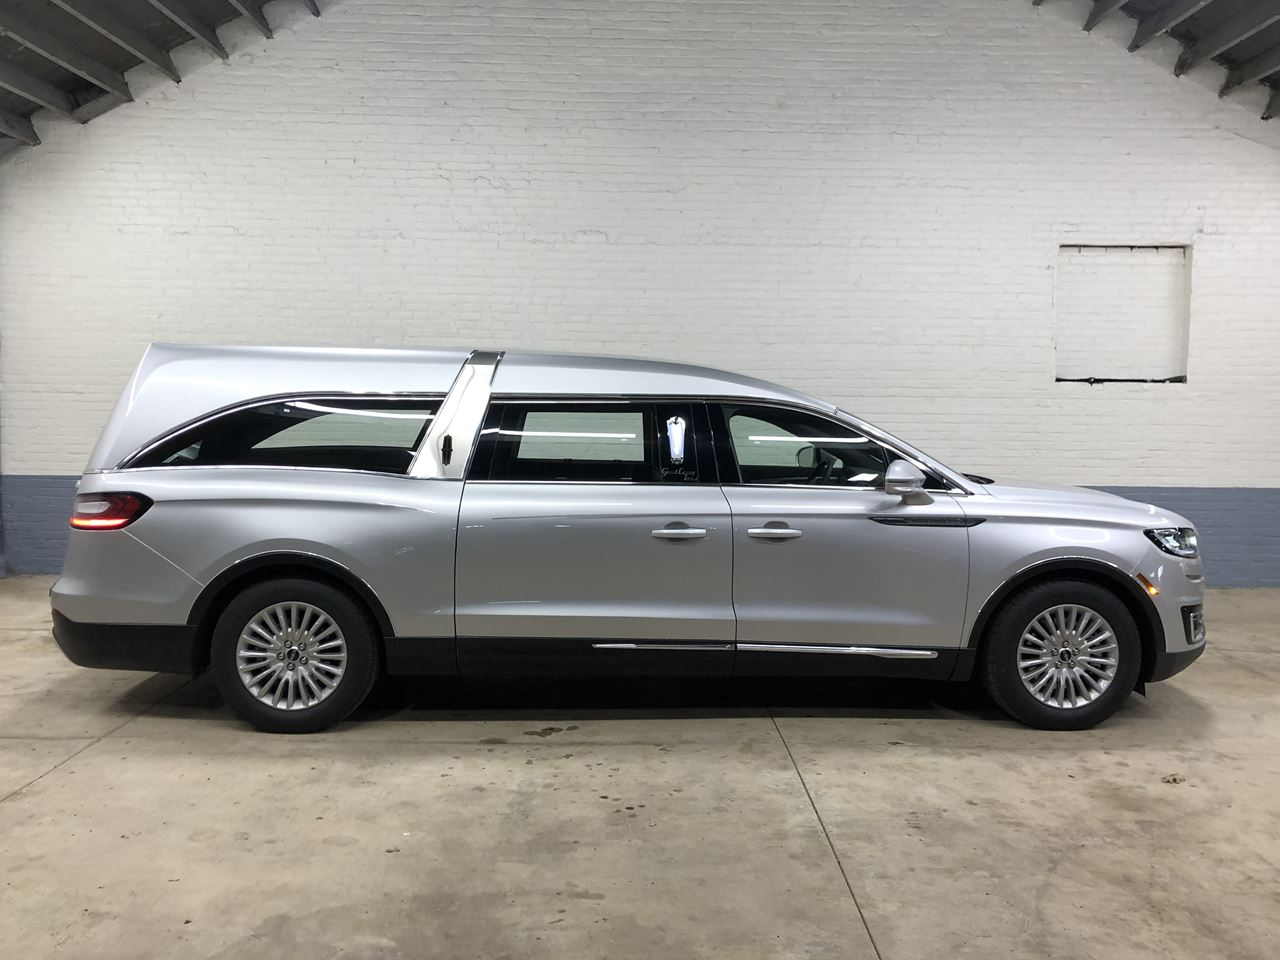 2019 Lincoln Nautilus MK Grand Legacy Limited 322 21